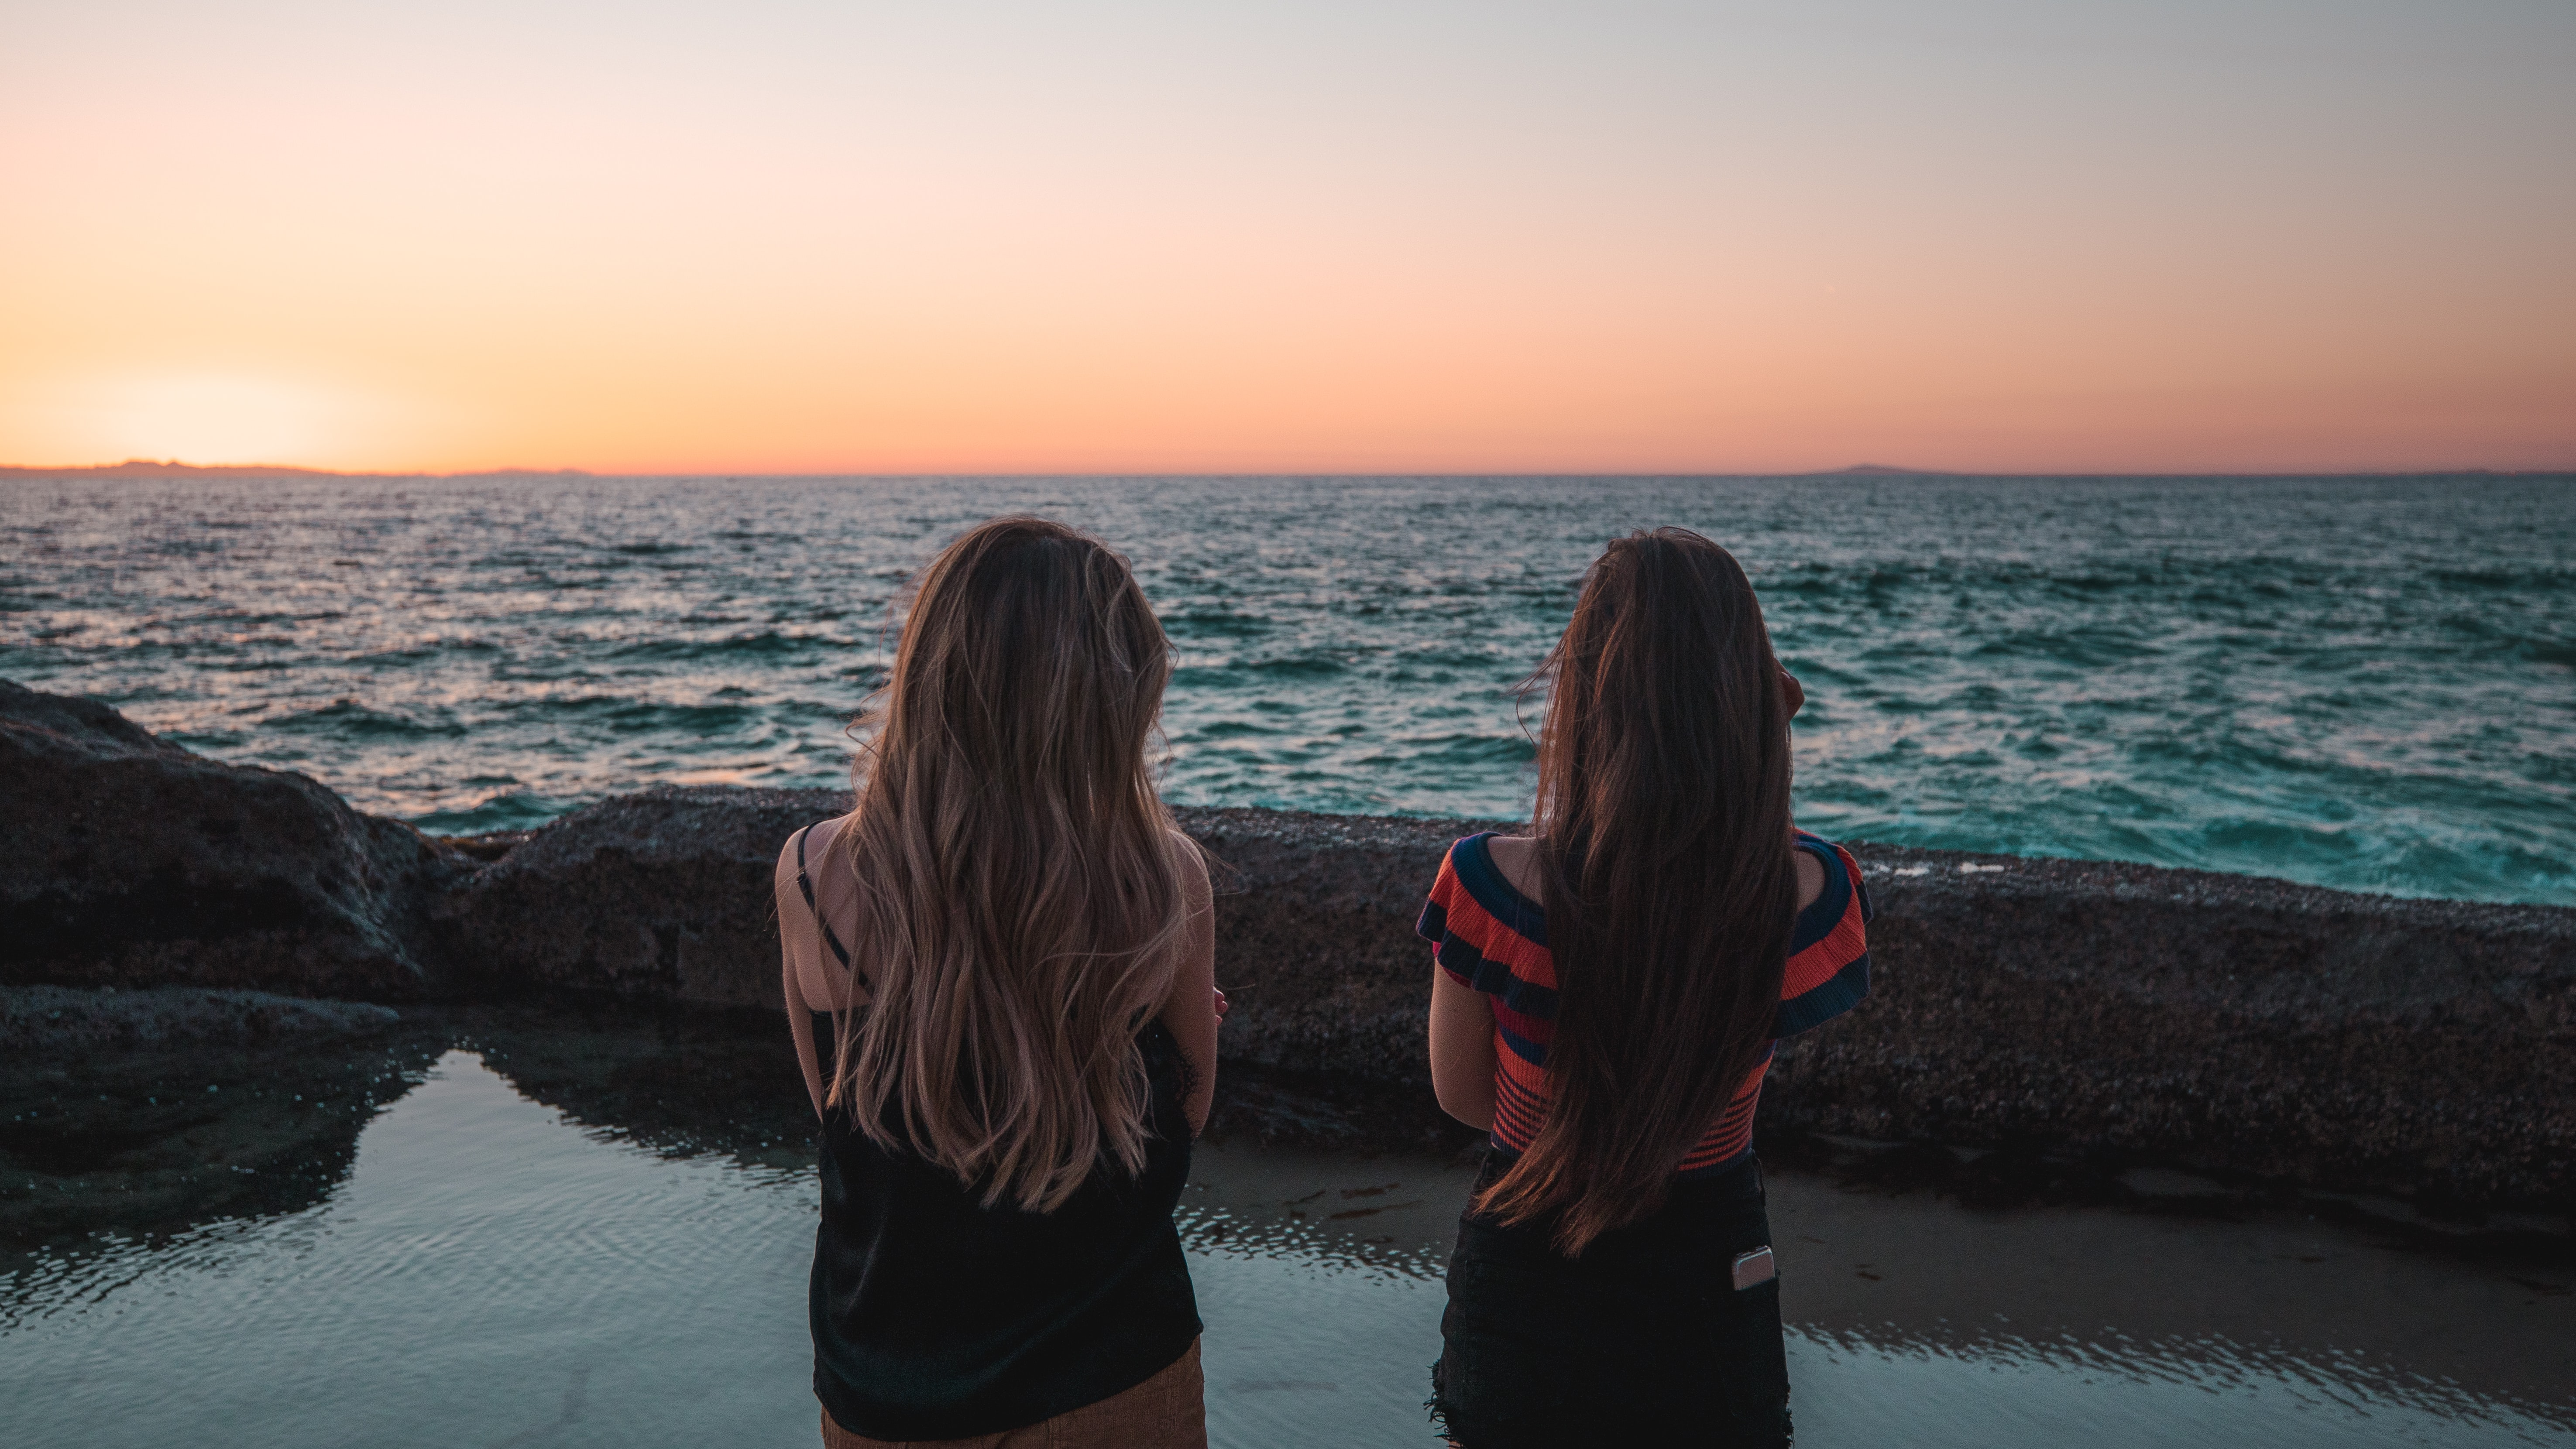 two woman standing facing body of water during daytime